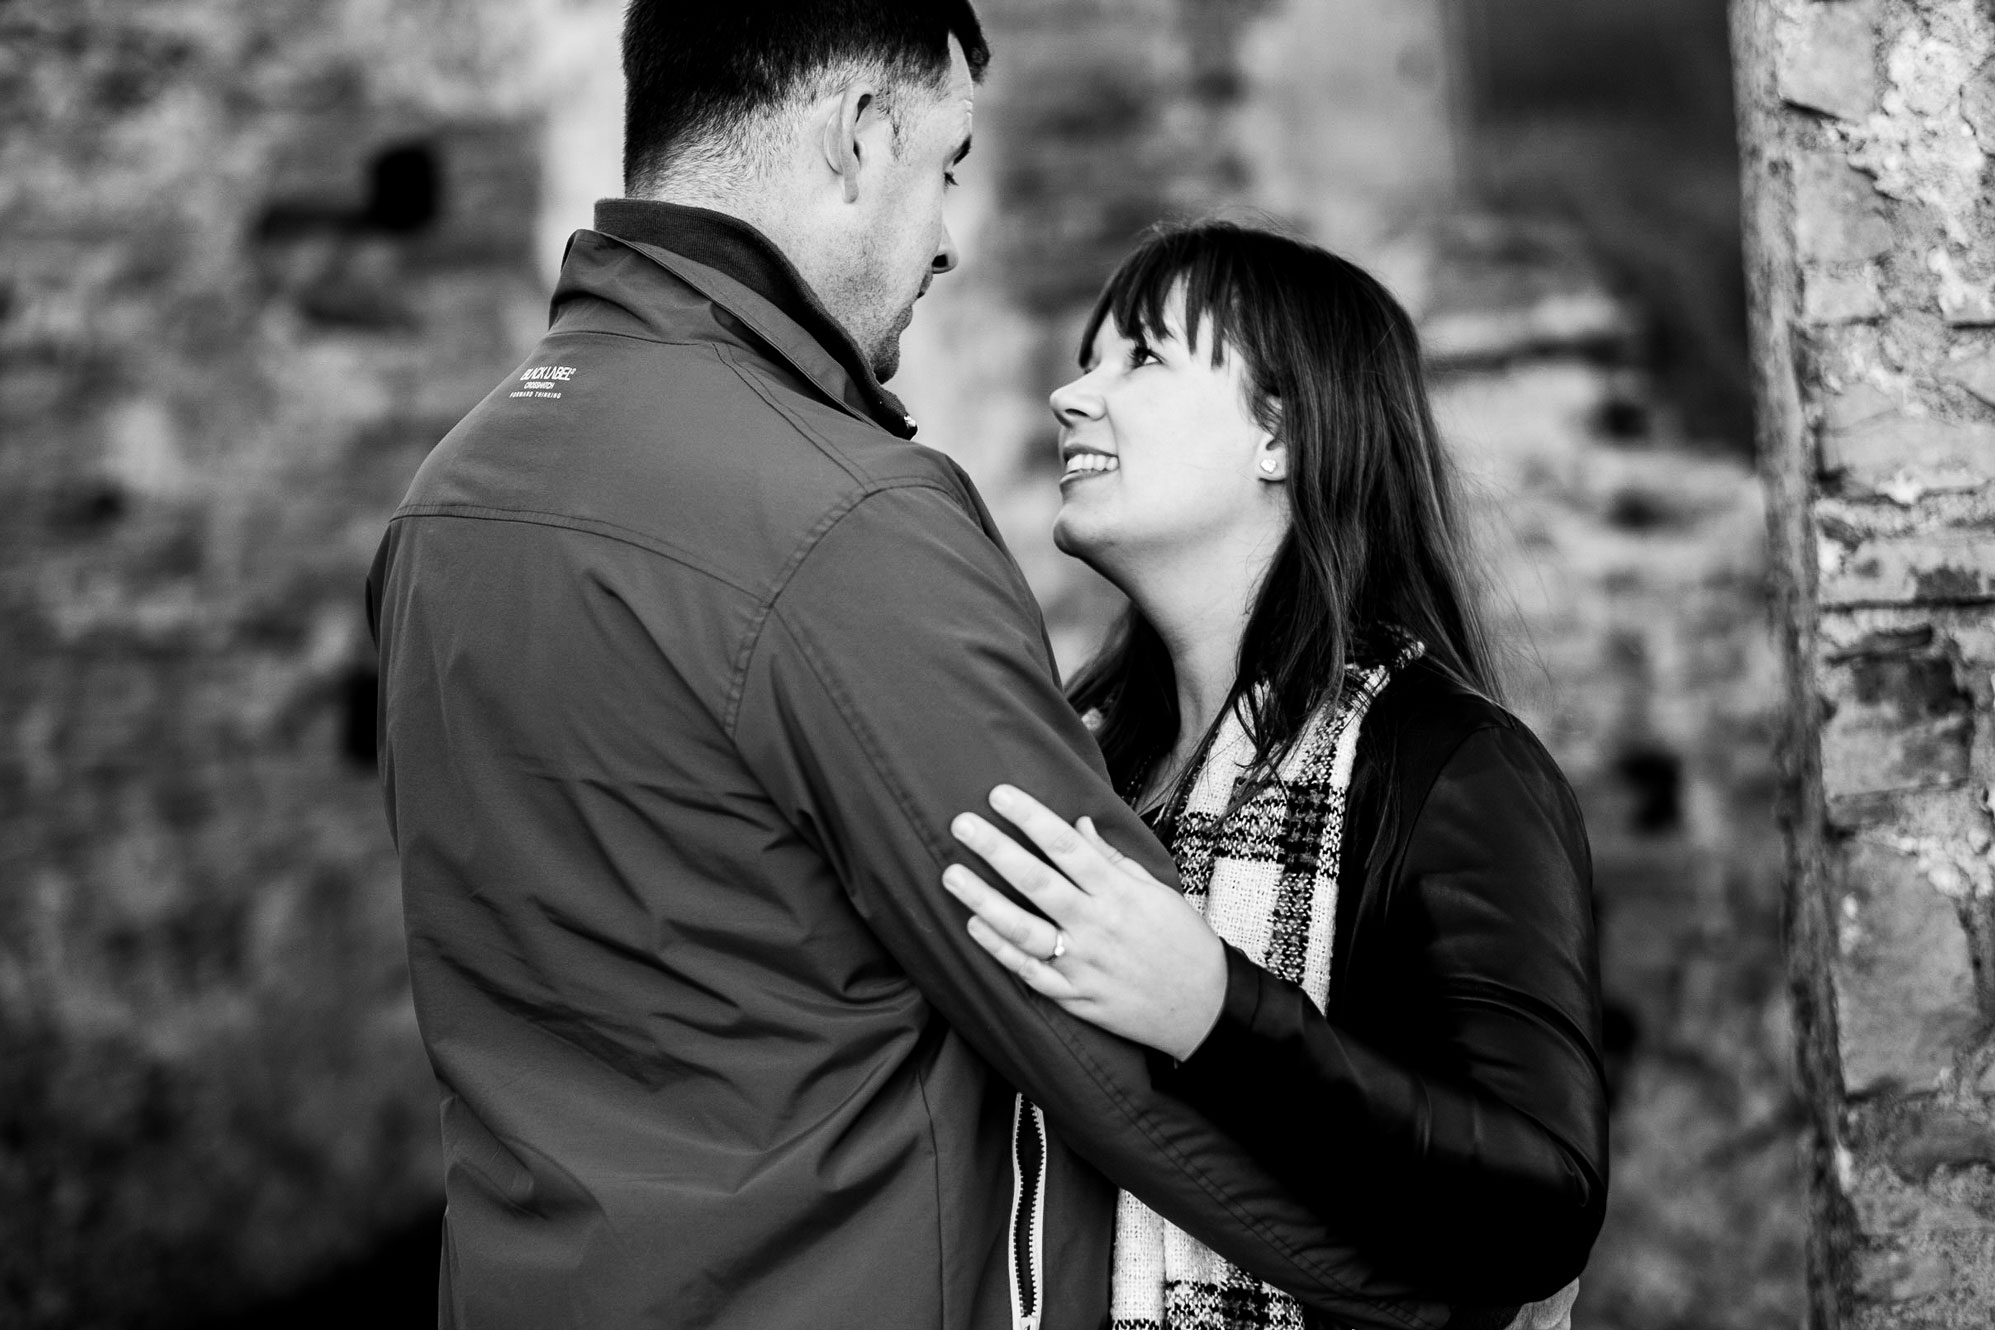 margam park engagement shoot